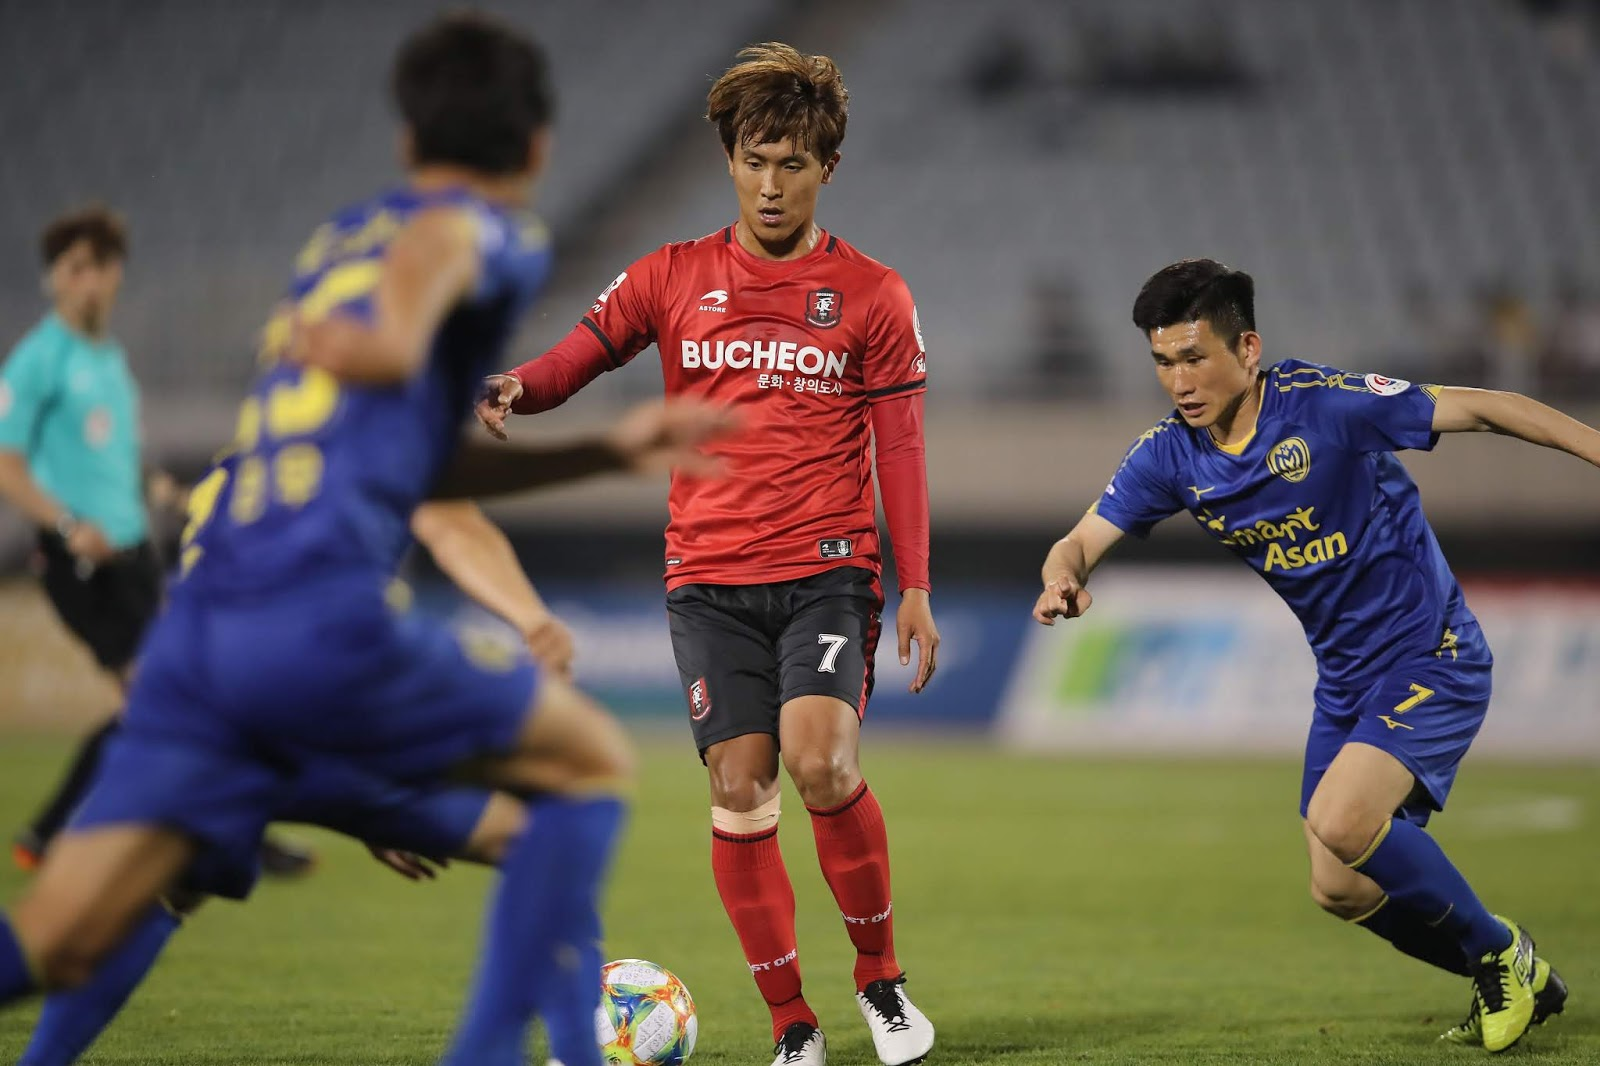 K League 2 Preview: Bucheon FC 1995 vs Busan IPark